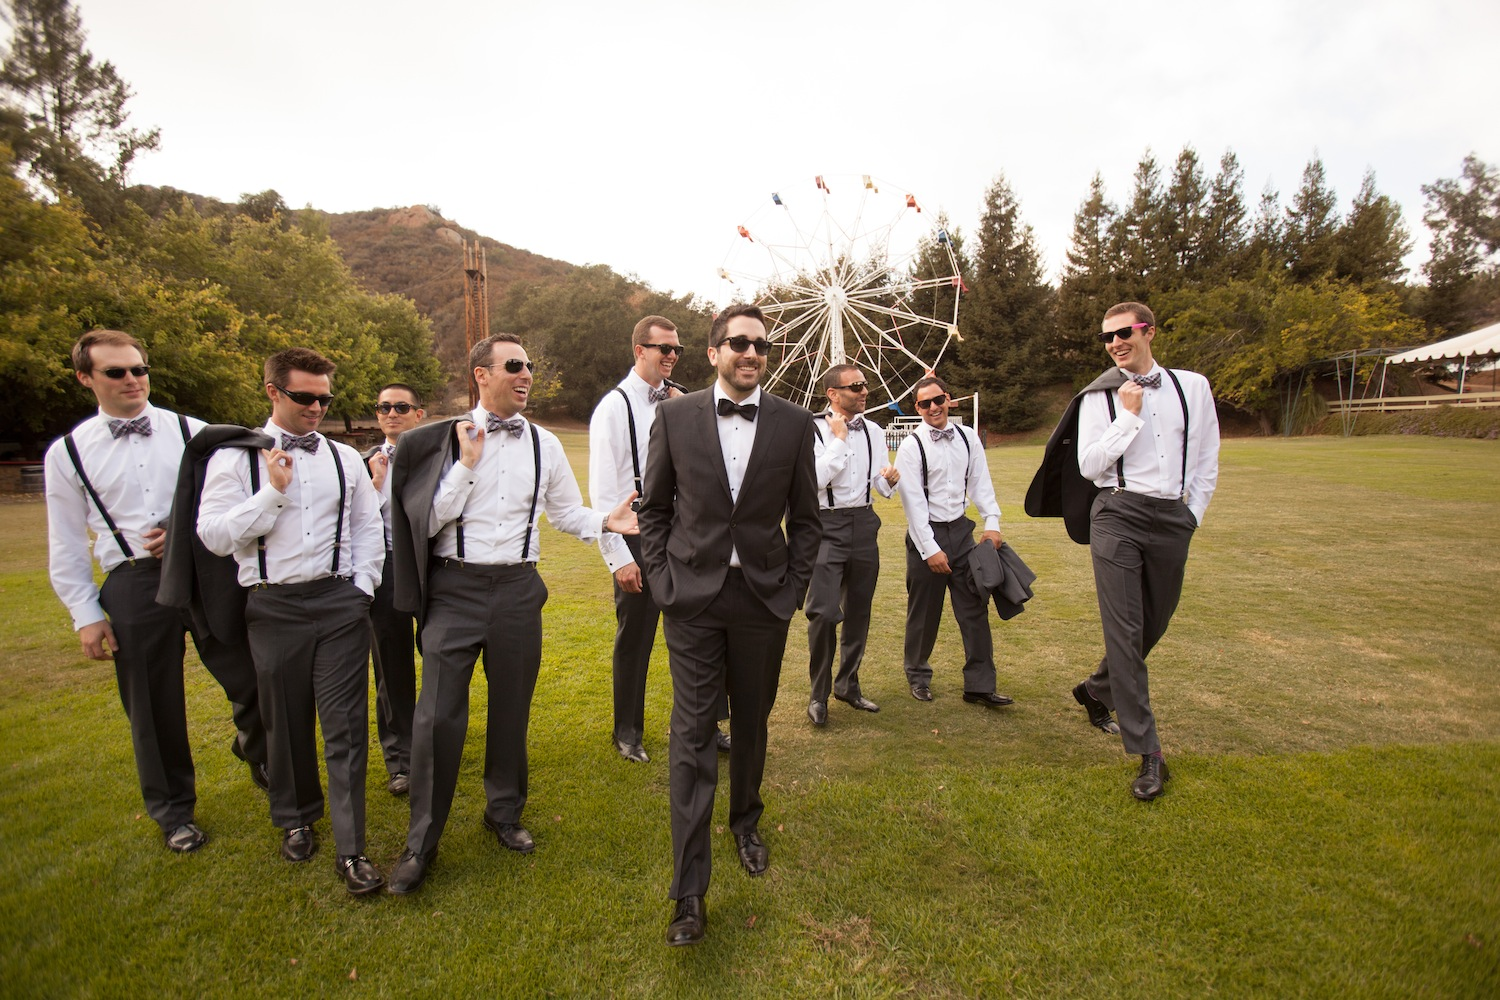 Groomsmen walk in front of ferris wheel